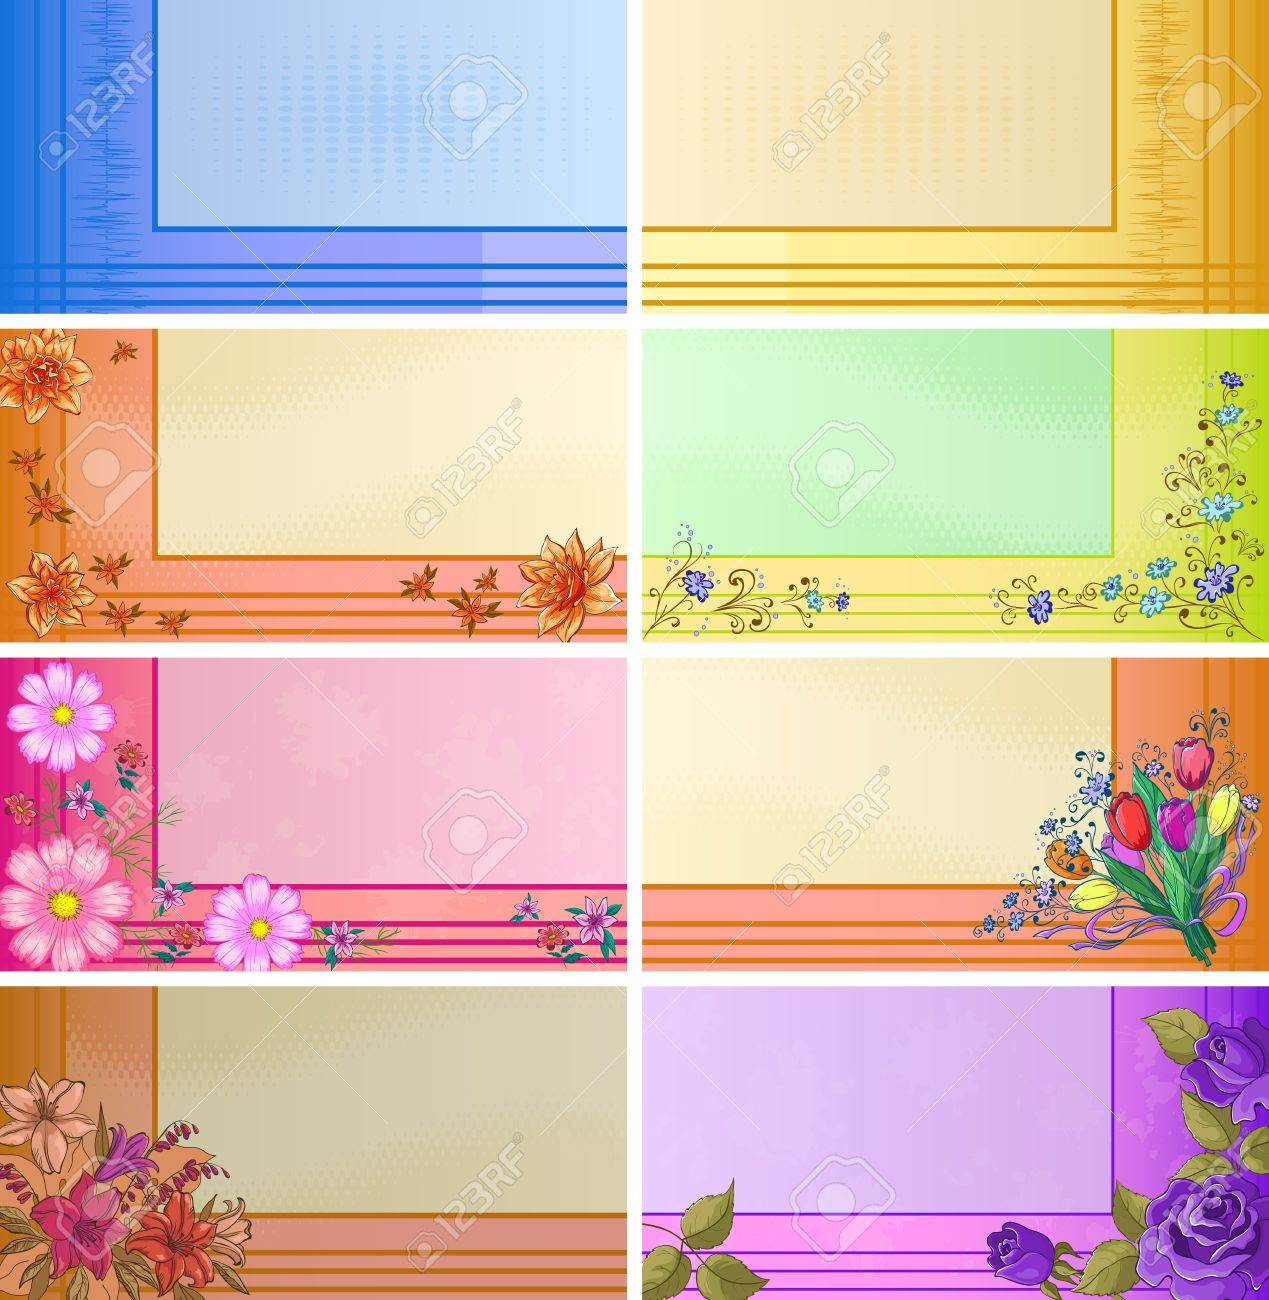 Set of business cards with various modern patterns and flowers Stock Vector - 14653762